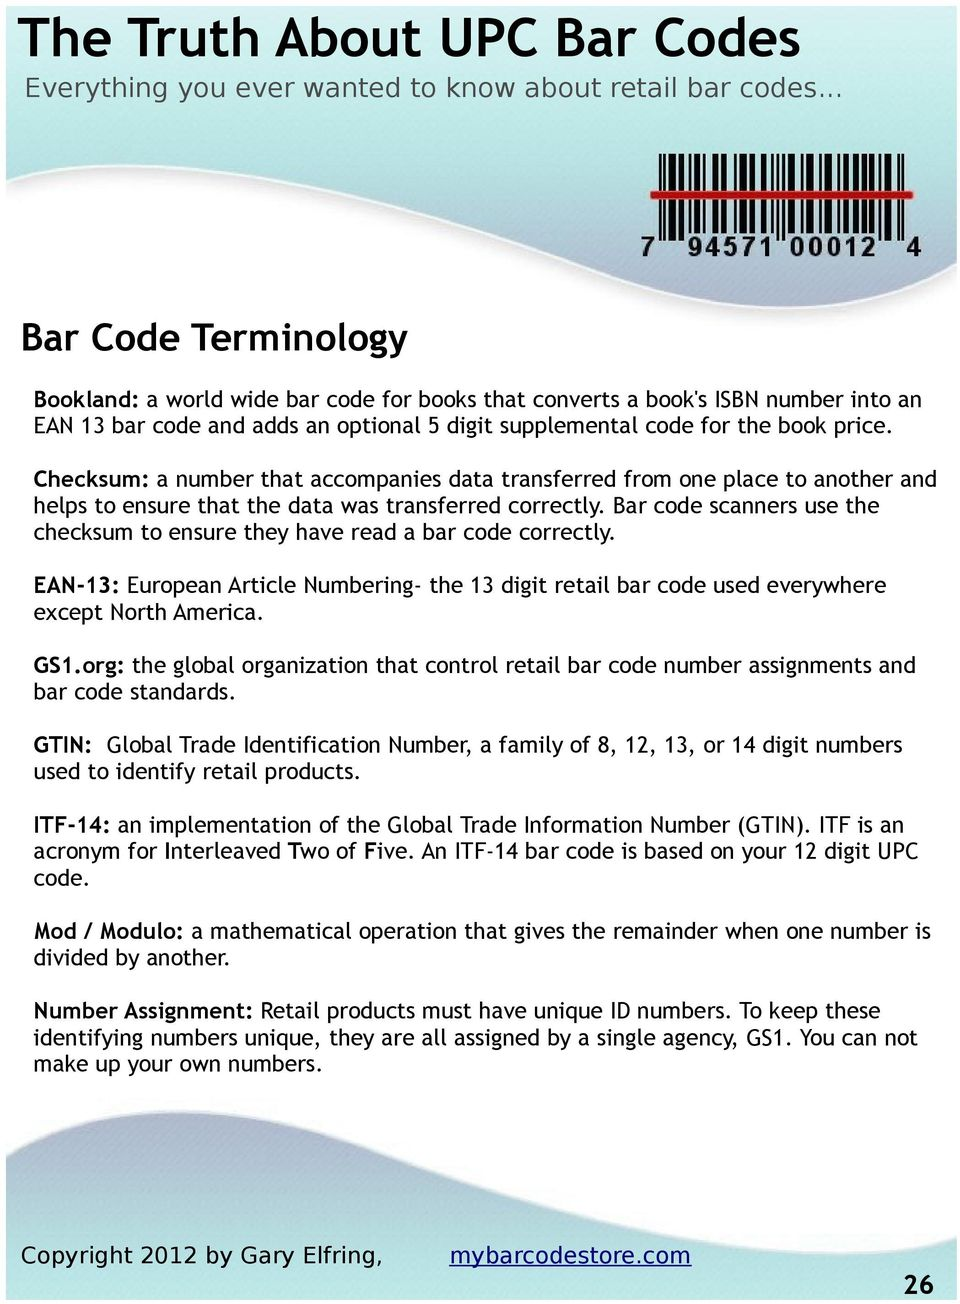 Bar code scanners use the checksum to ensure they have read a bar code correctly. EAN-13: European Article Numbering- the 13 digit retail bar code used everywhere except North America. GS1.